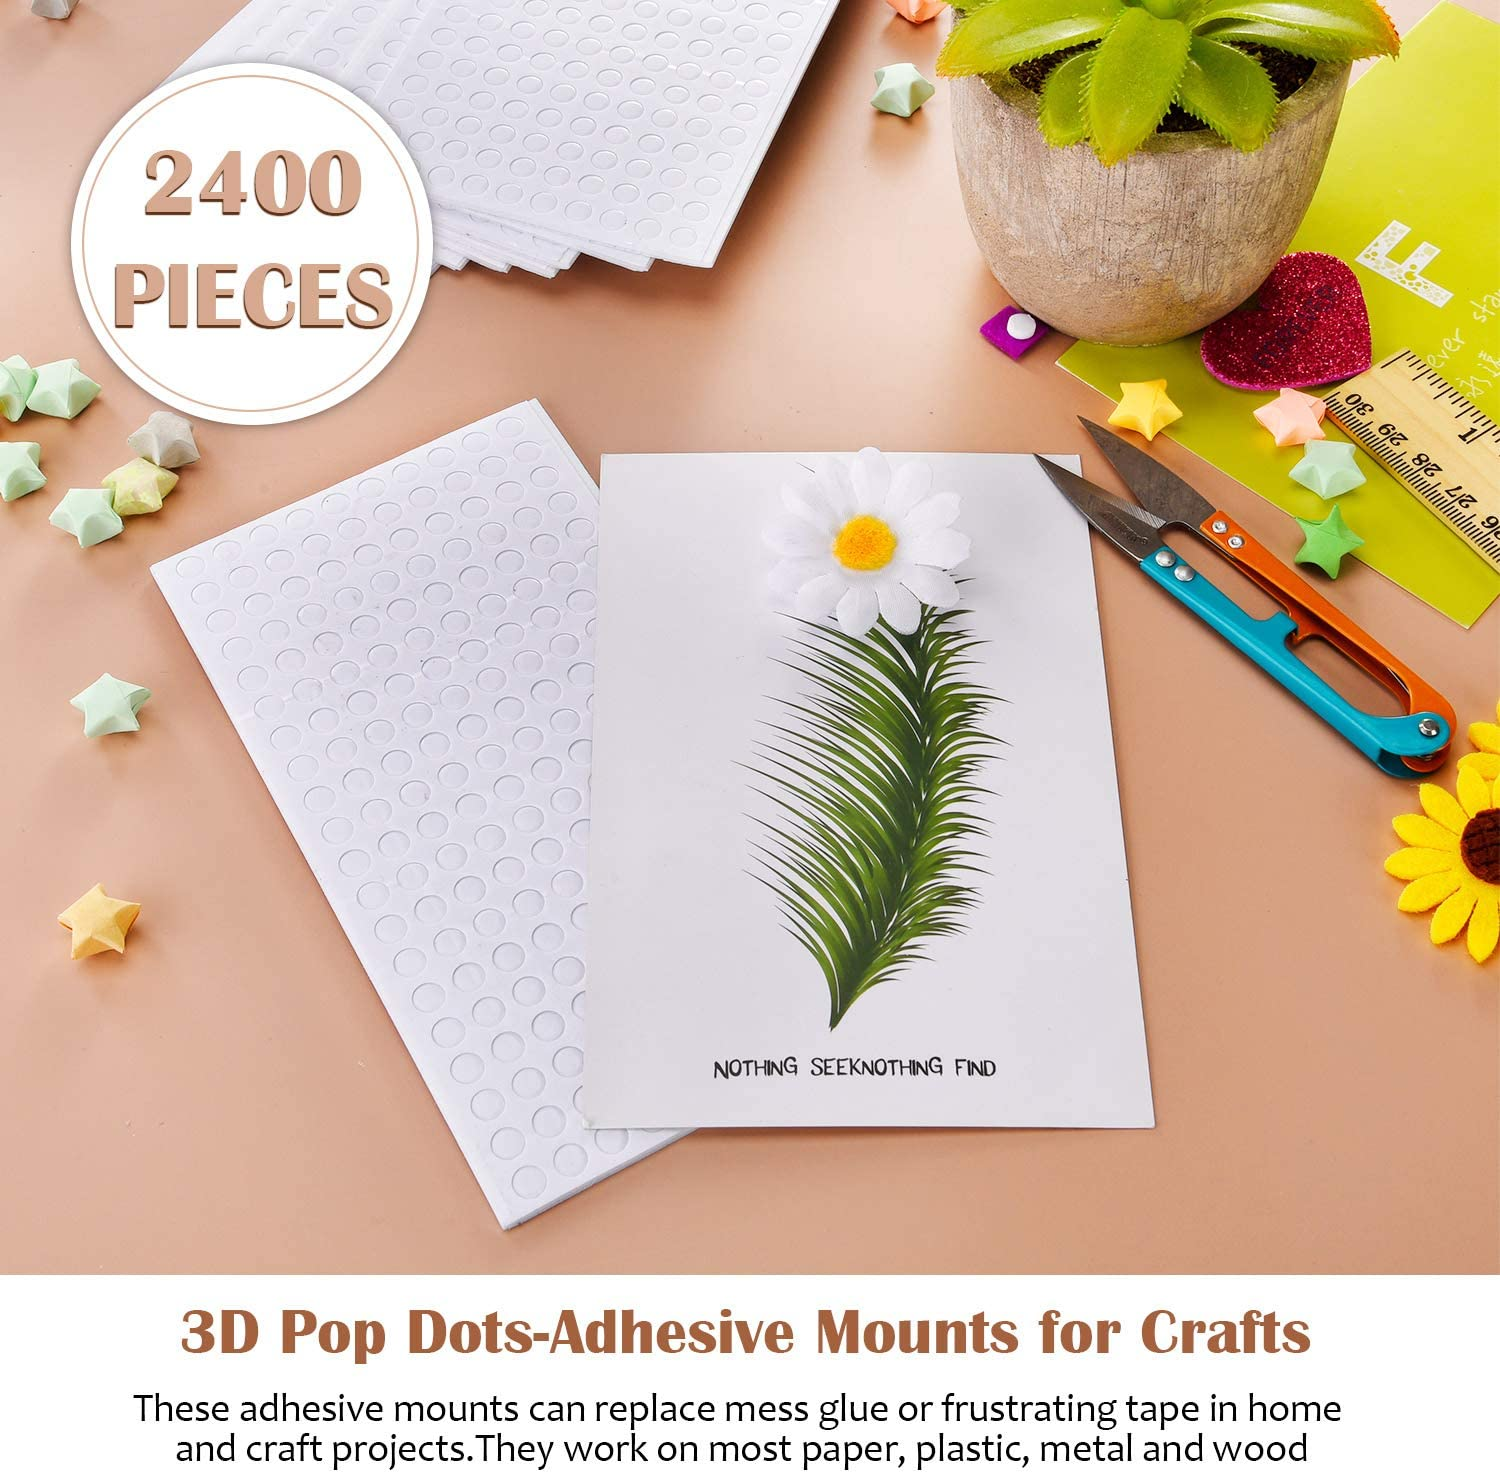 2400 Pieces Foam Dots Dual-Adhesive 3D Foam Tapes Foam Pop Dots Adhesive Mount for Craft DIY Art or Office Supplies Round 12 Sheets 0.4 Inch